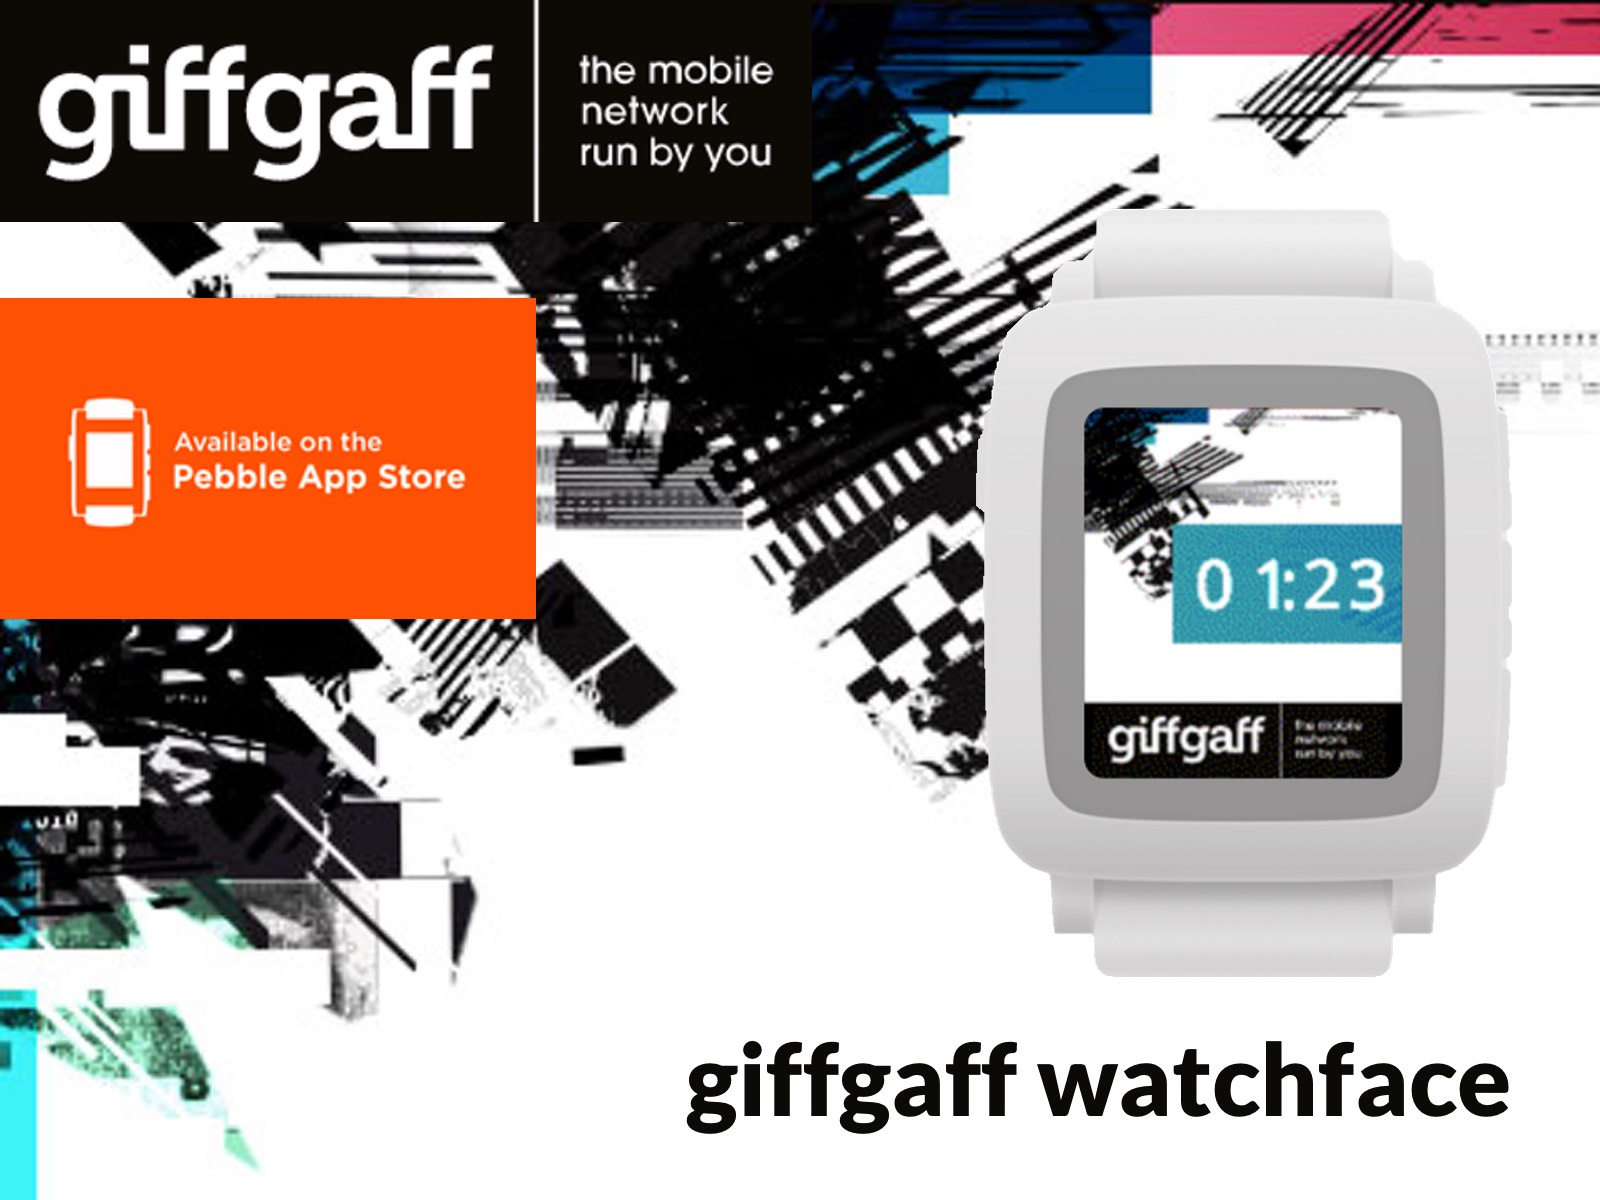 Unofficial giffgaff watchface